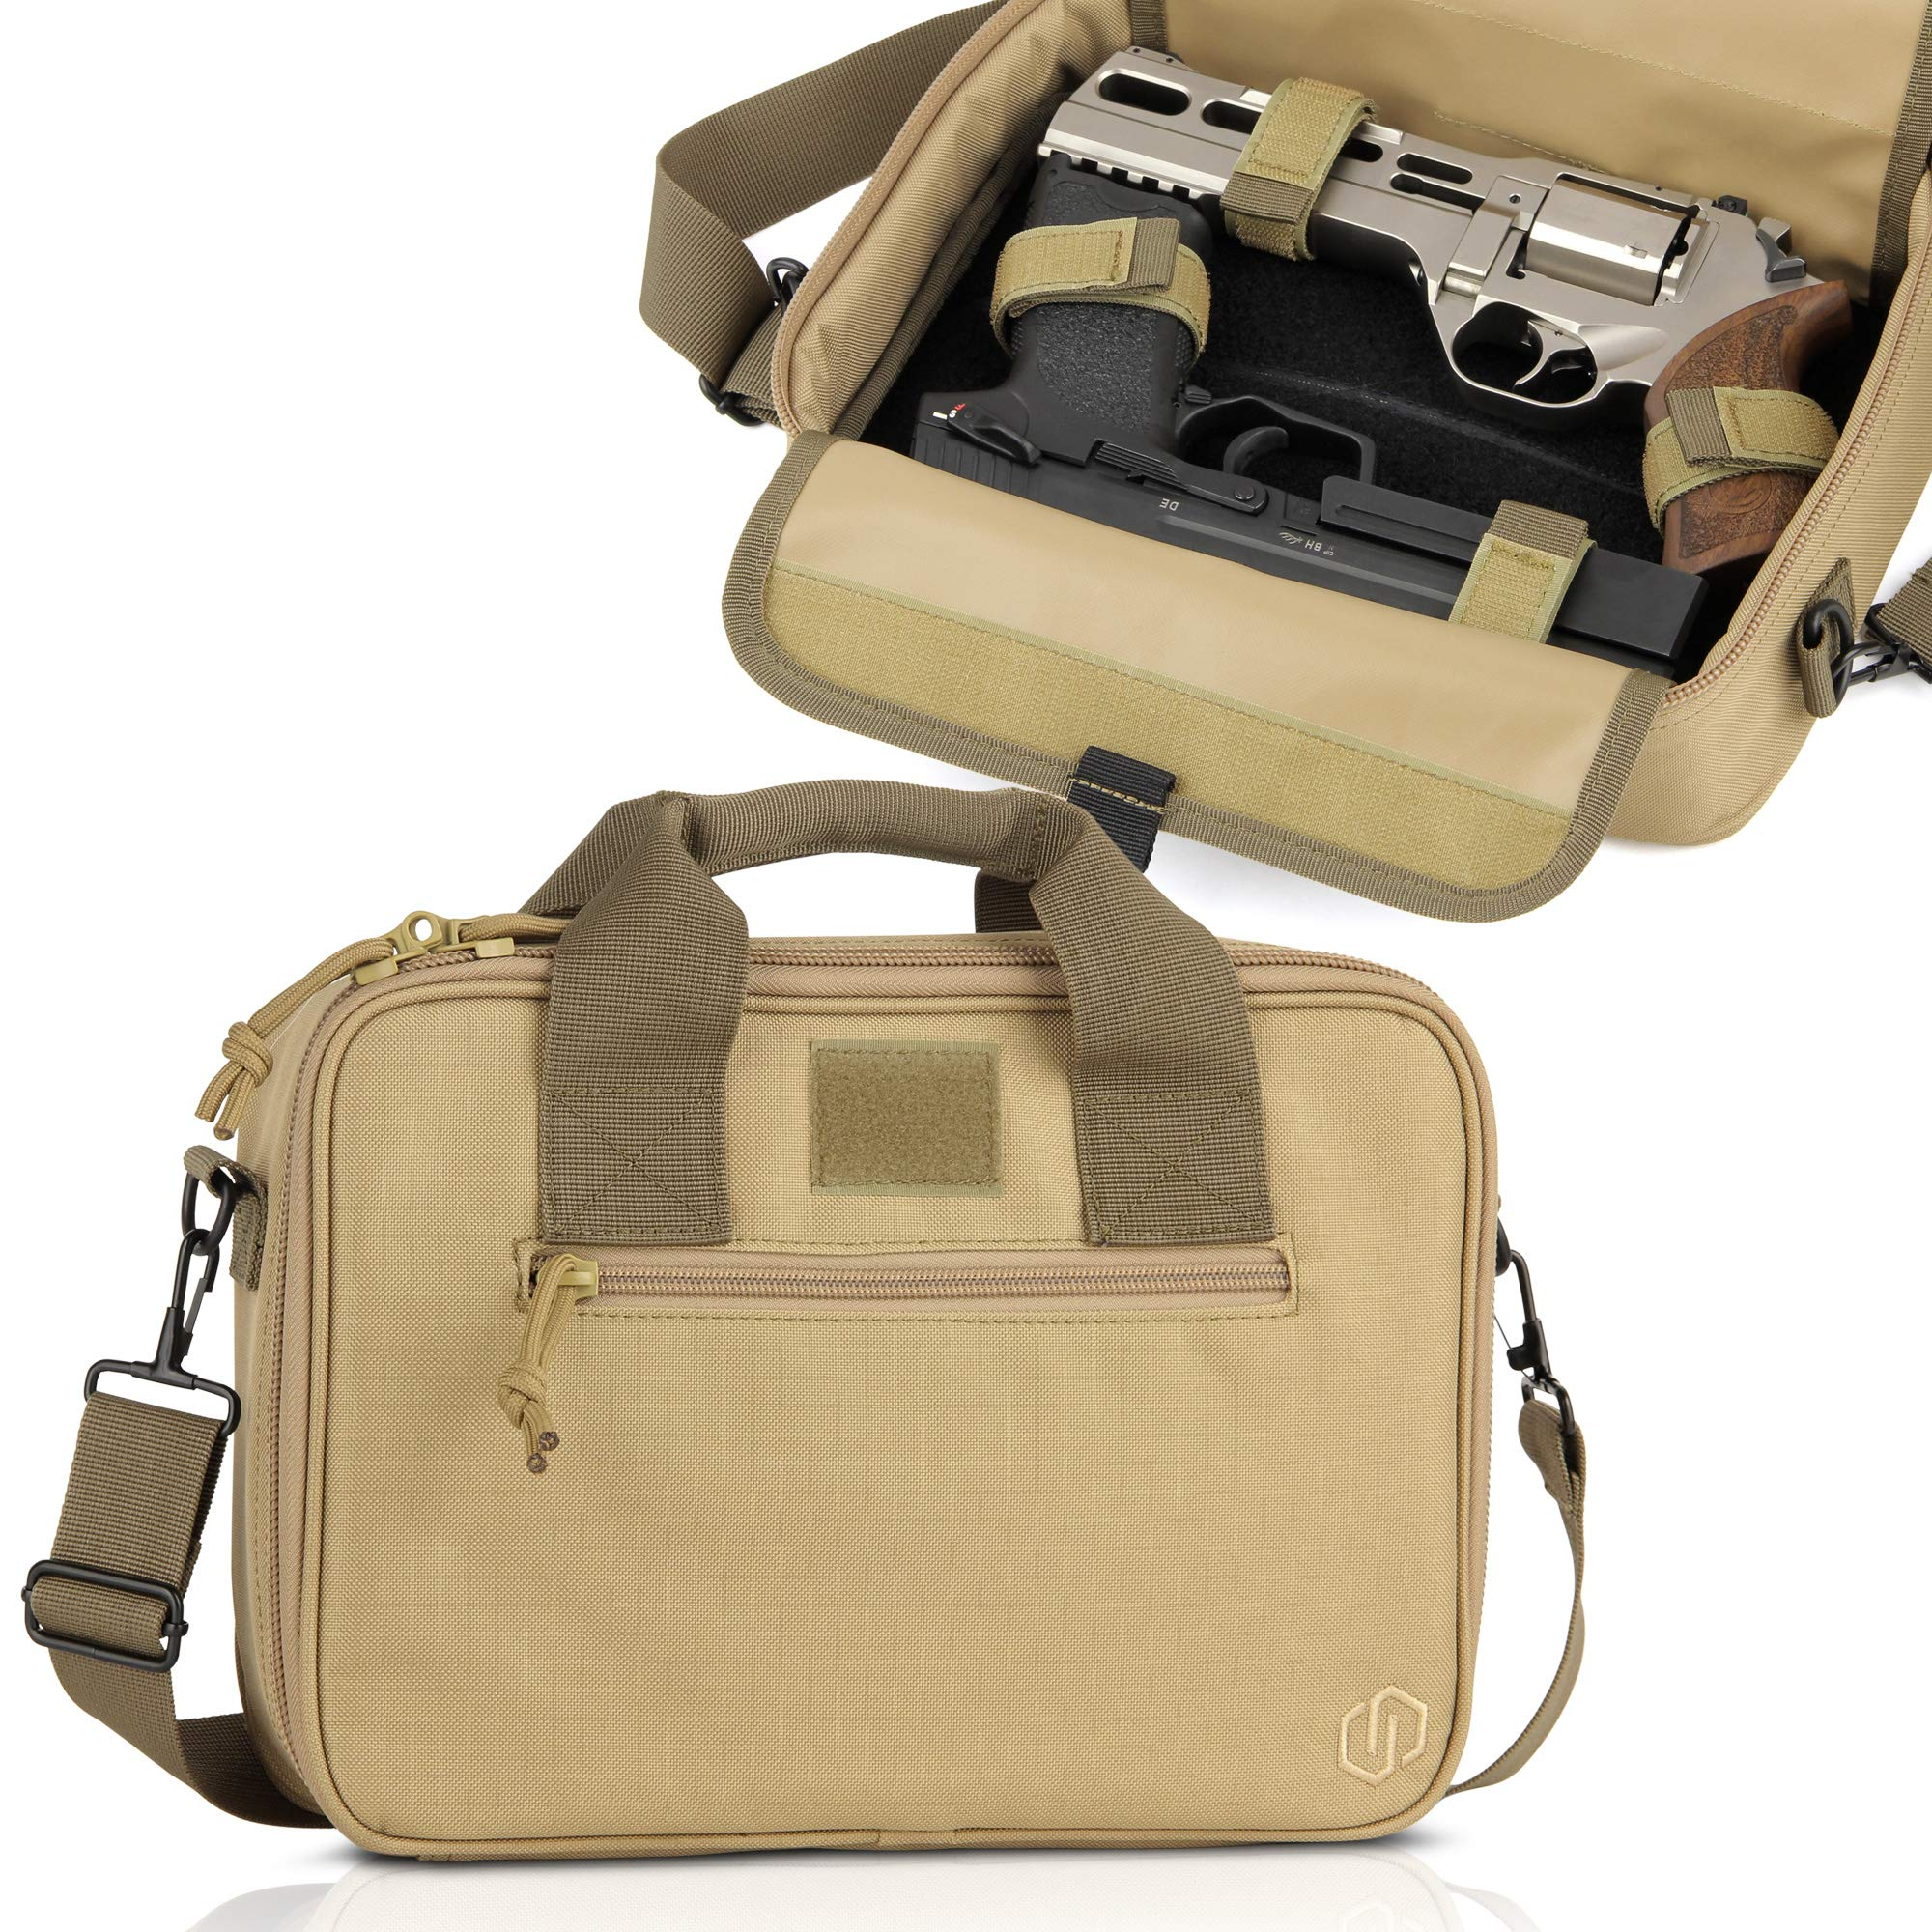 Savior Equipment Tactical Double Handgun Firearm Case Discreet Pistol Bag - Additional Magazine Storage Slots, Lockable Compartment w/Adjustable Shoulder Strap by Savior Equipment